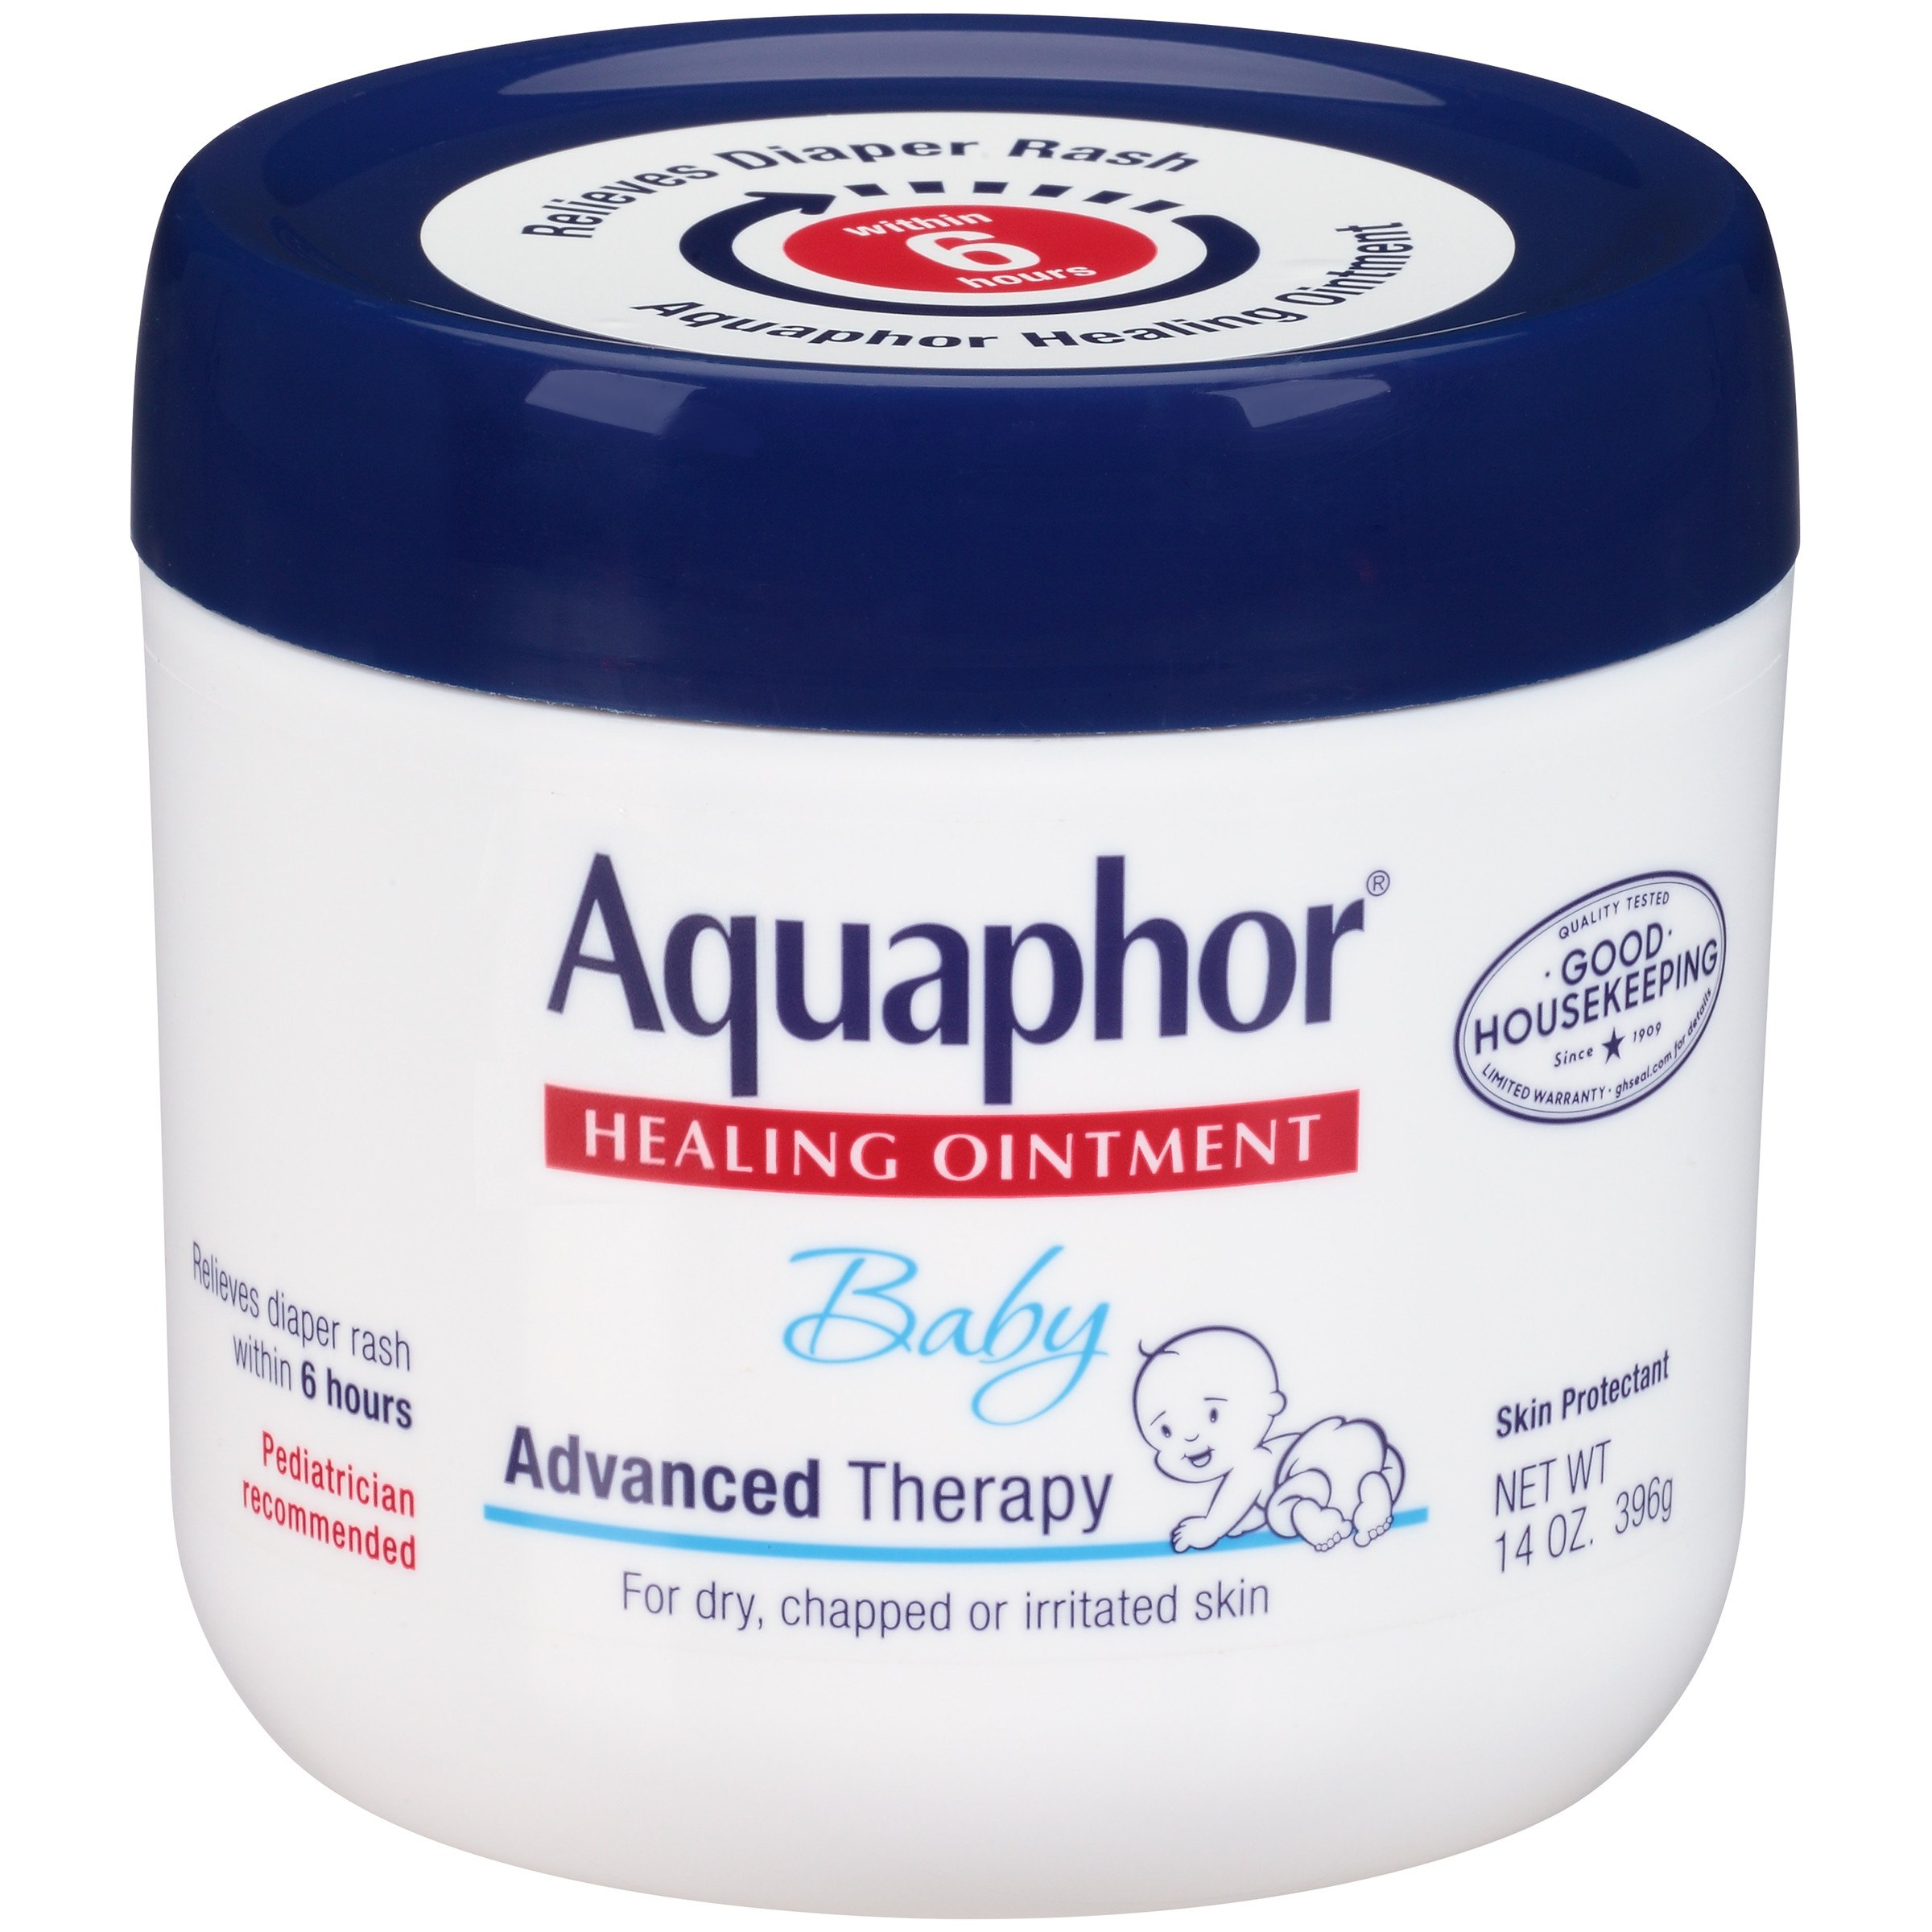 Aquaphor Baby Healing Ointment Advanced Therapy Skin Protectant, 14 Ounce, Pack of 2 by Aquaphor